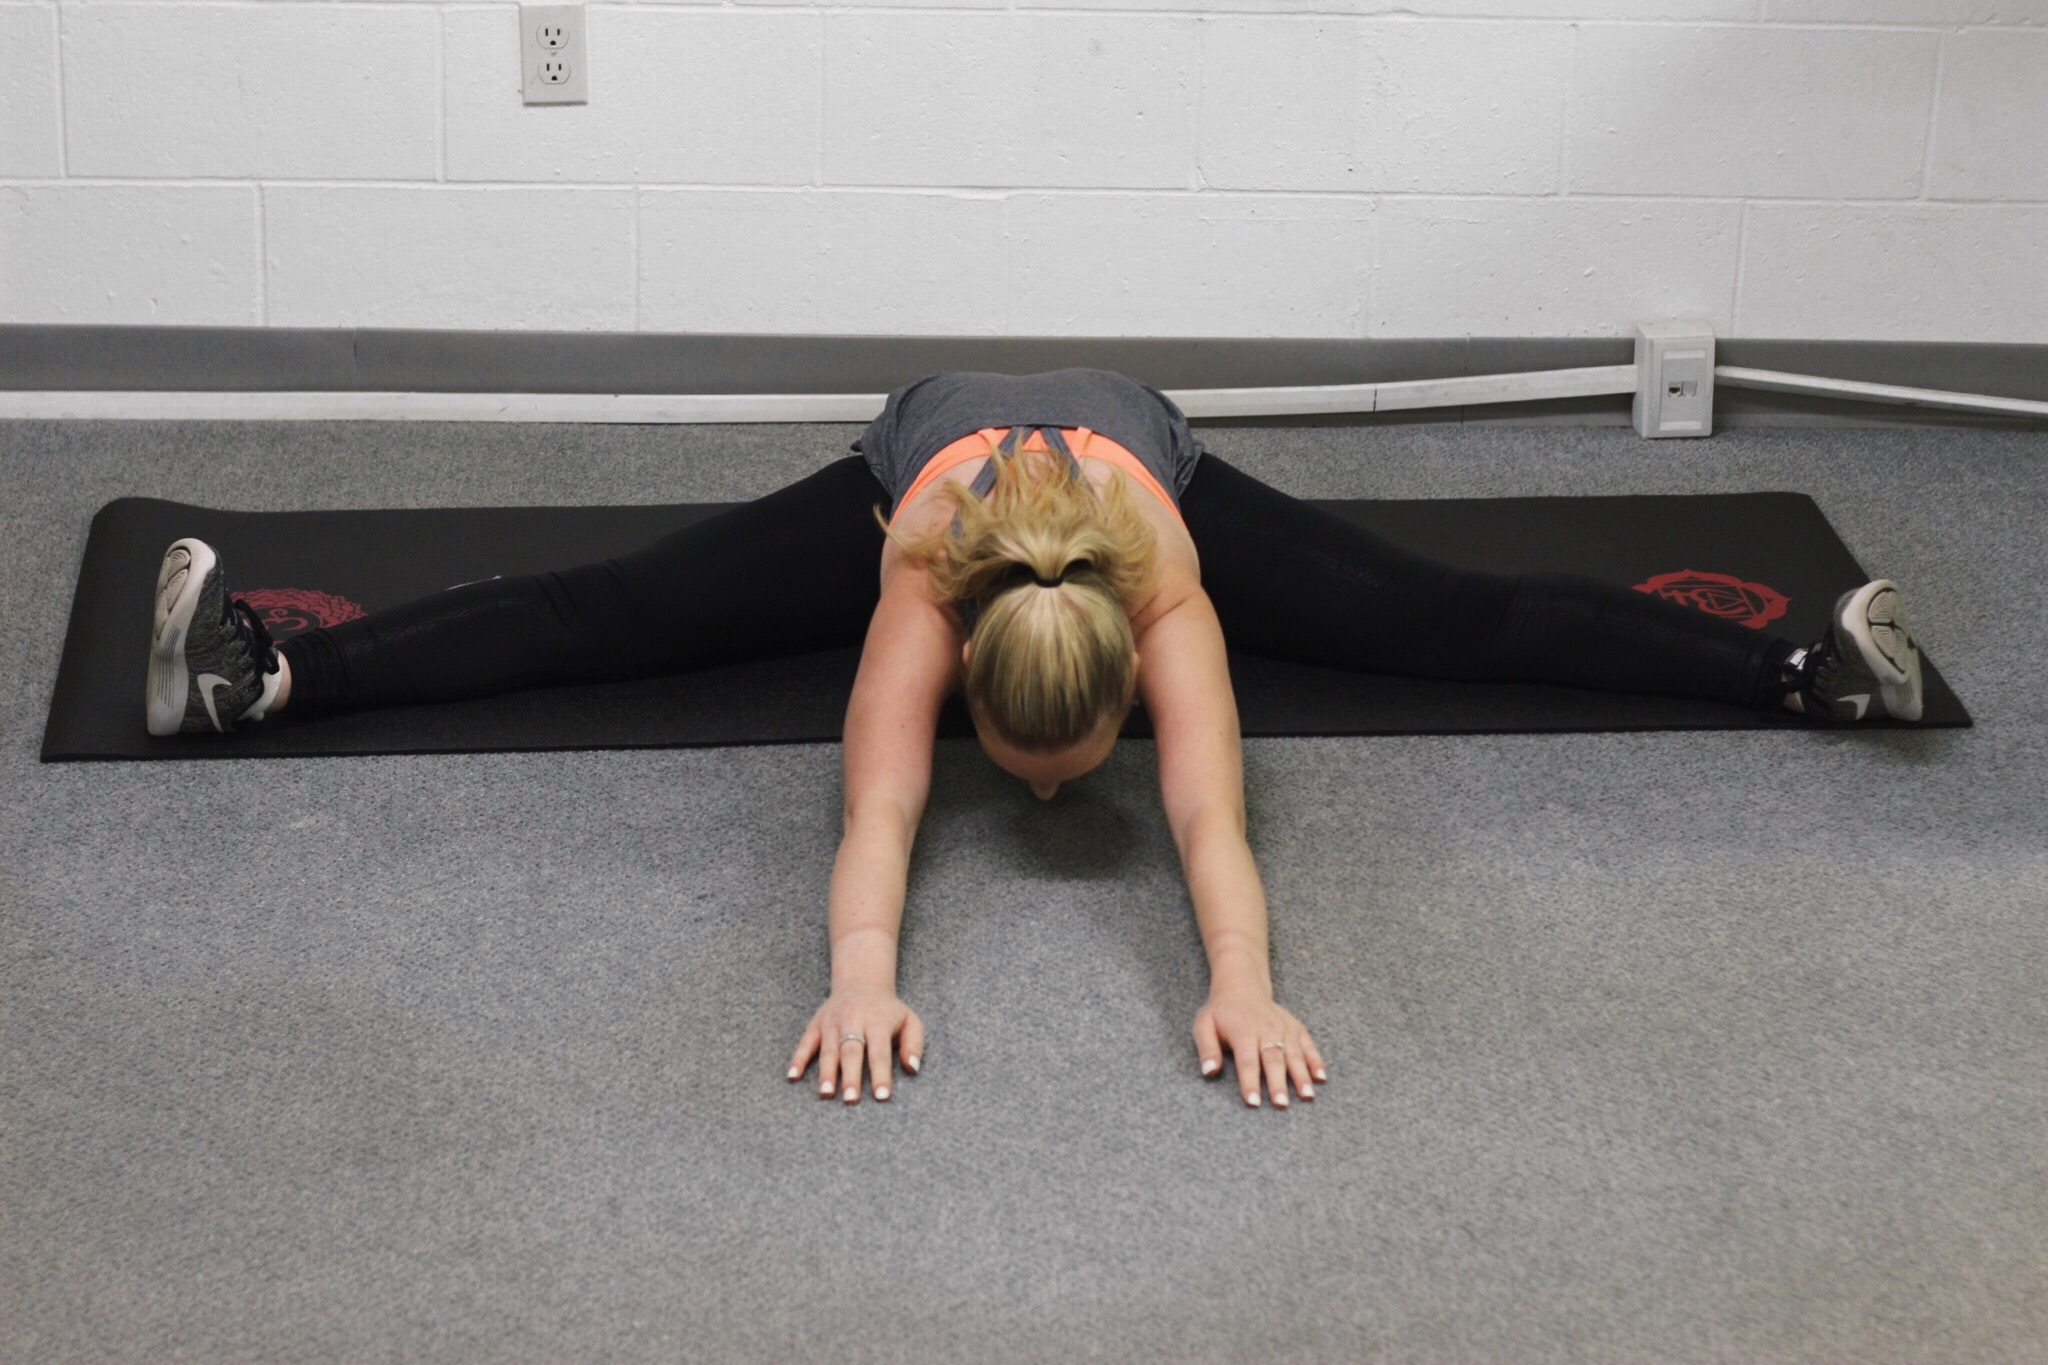 Straddle reaching into middle